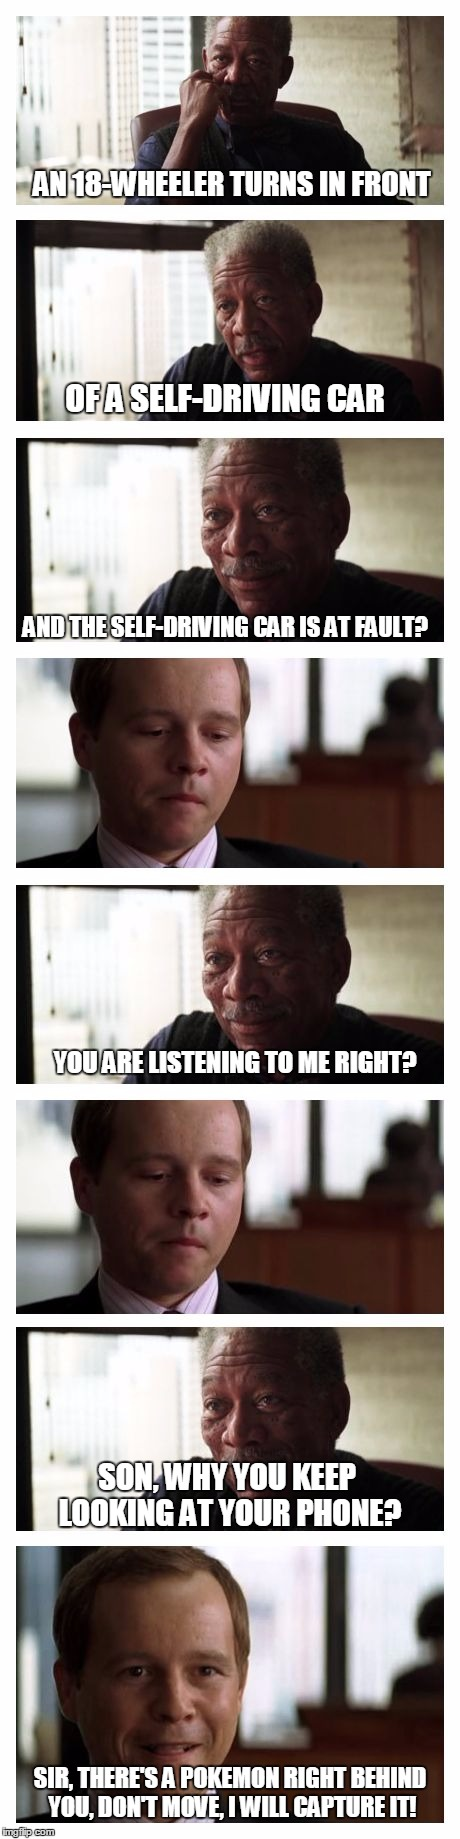 Short attention spans everywhere | AN 18-WHEELER TURNS IN FRONT OF A SELF-DRIVING CAR AND THE SELF-DRIVING CAR IS AT FAULT? YOU ARE LISTENING TO ME RIGHT? SON, WHY YOU KEEP LO | image tagged in morgan freeman good luck extended,memes,morgan freeman good luck,pokemon go,vertical | made w/ Imgflip meme maker